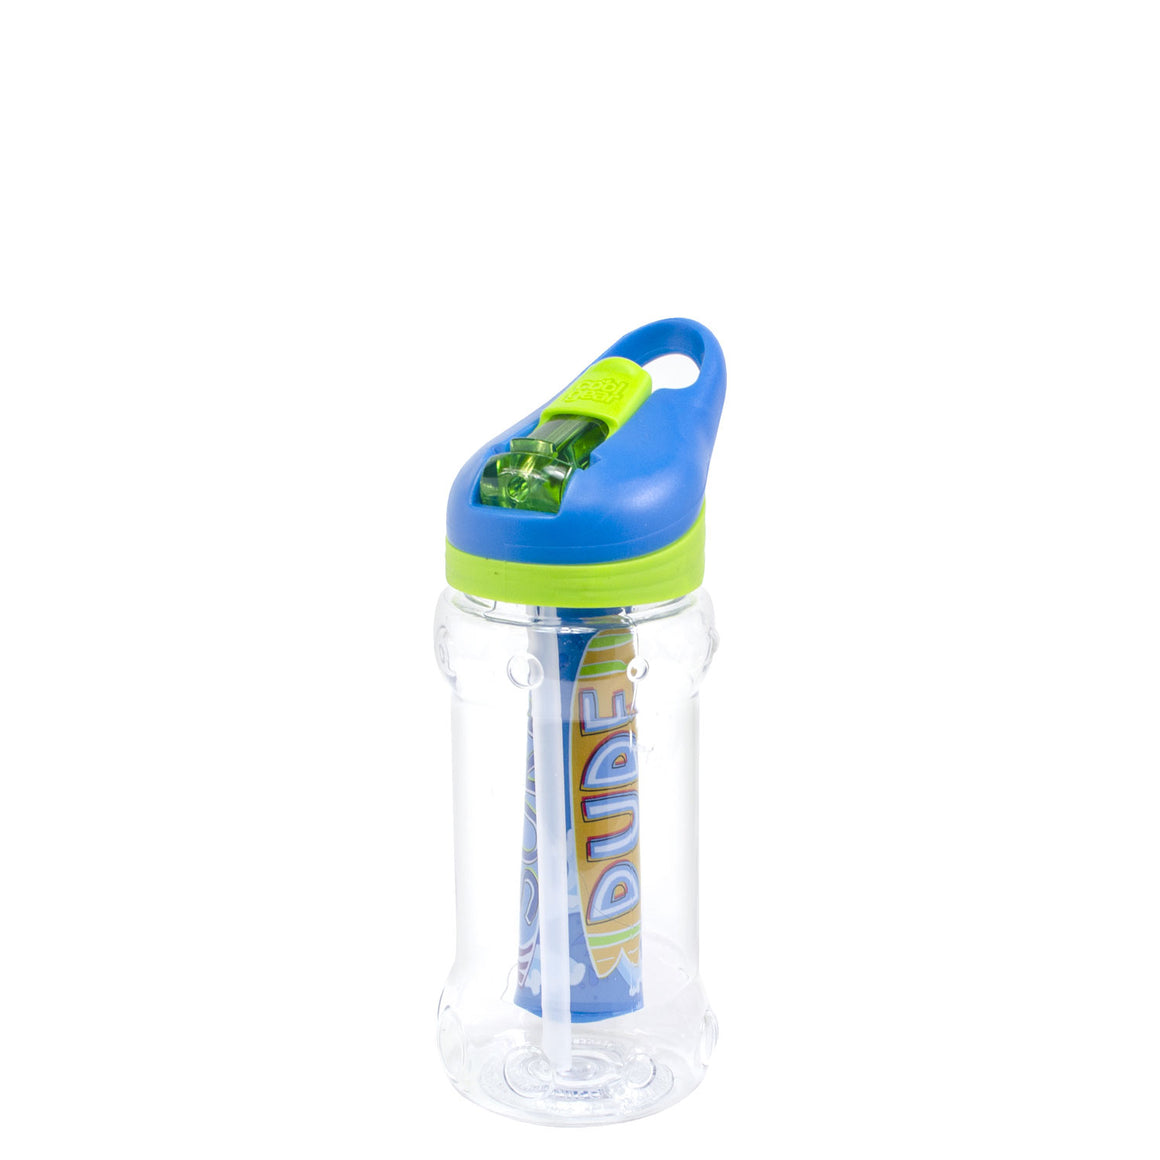 Bright Green / Camo Paloma 14 Oz Water Bottle at Cool Gear Kids,Water Bottles